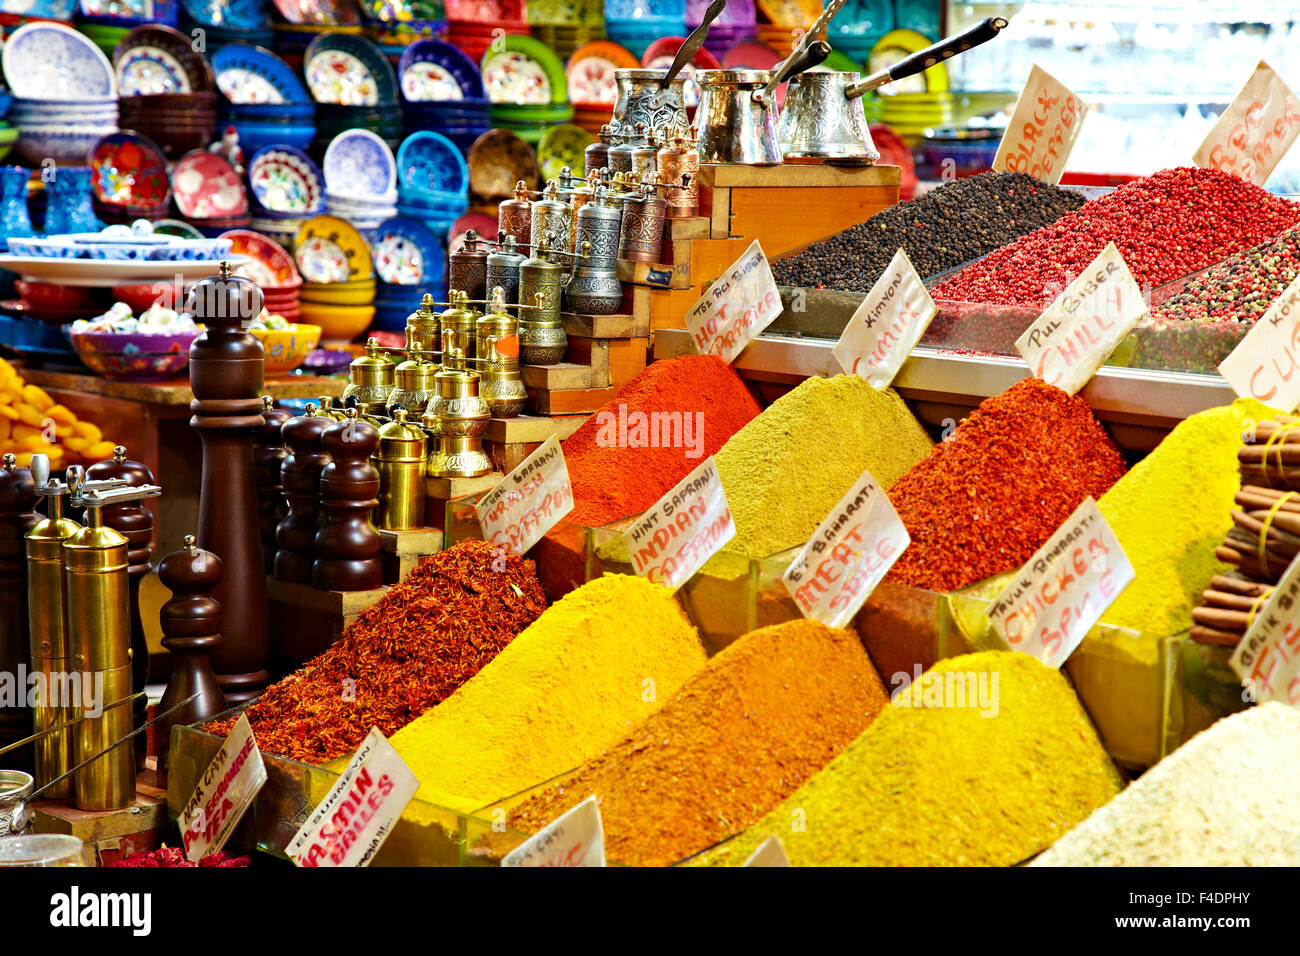 Eastern bazaar - spices, coffee Turks and hand mills - Stock Image